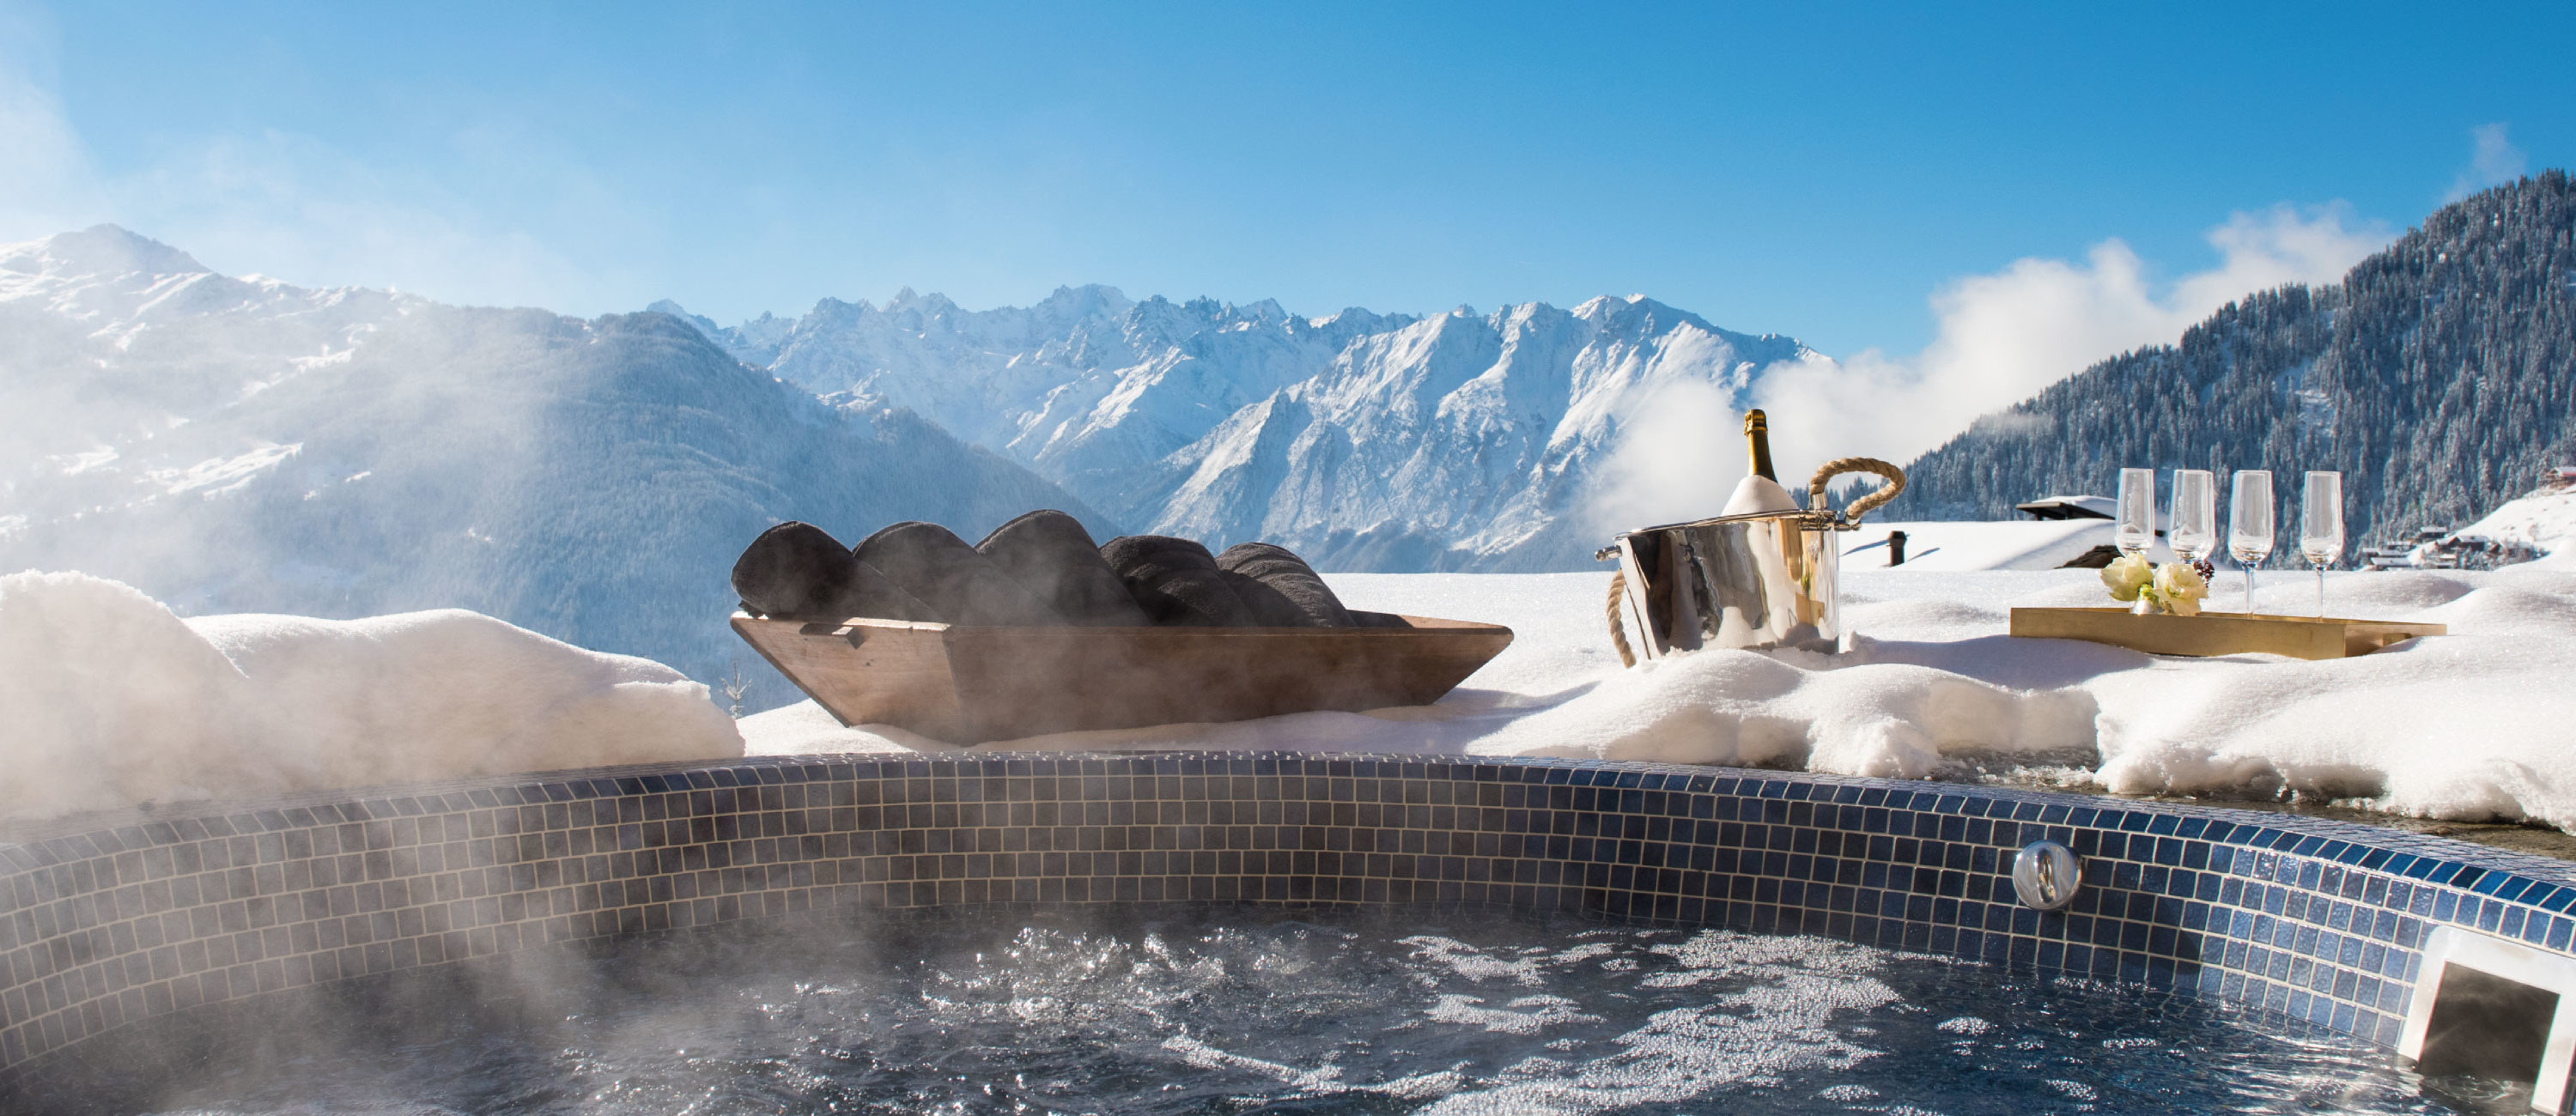 Outdoor hot tub with mountain views at Chalet Chouqui